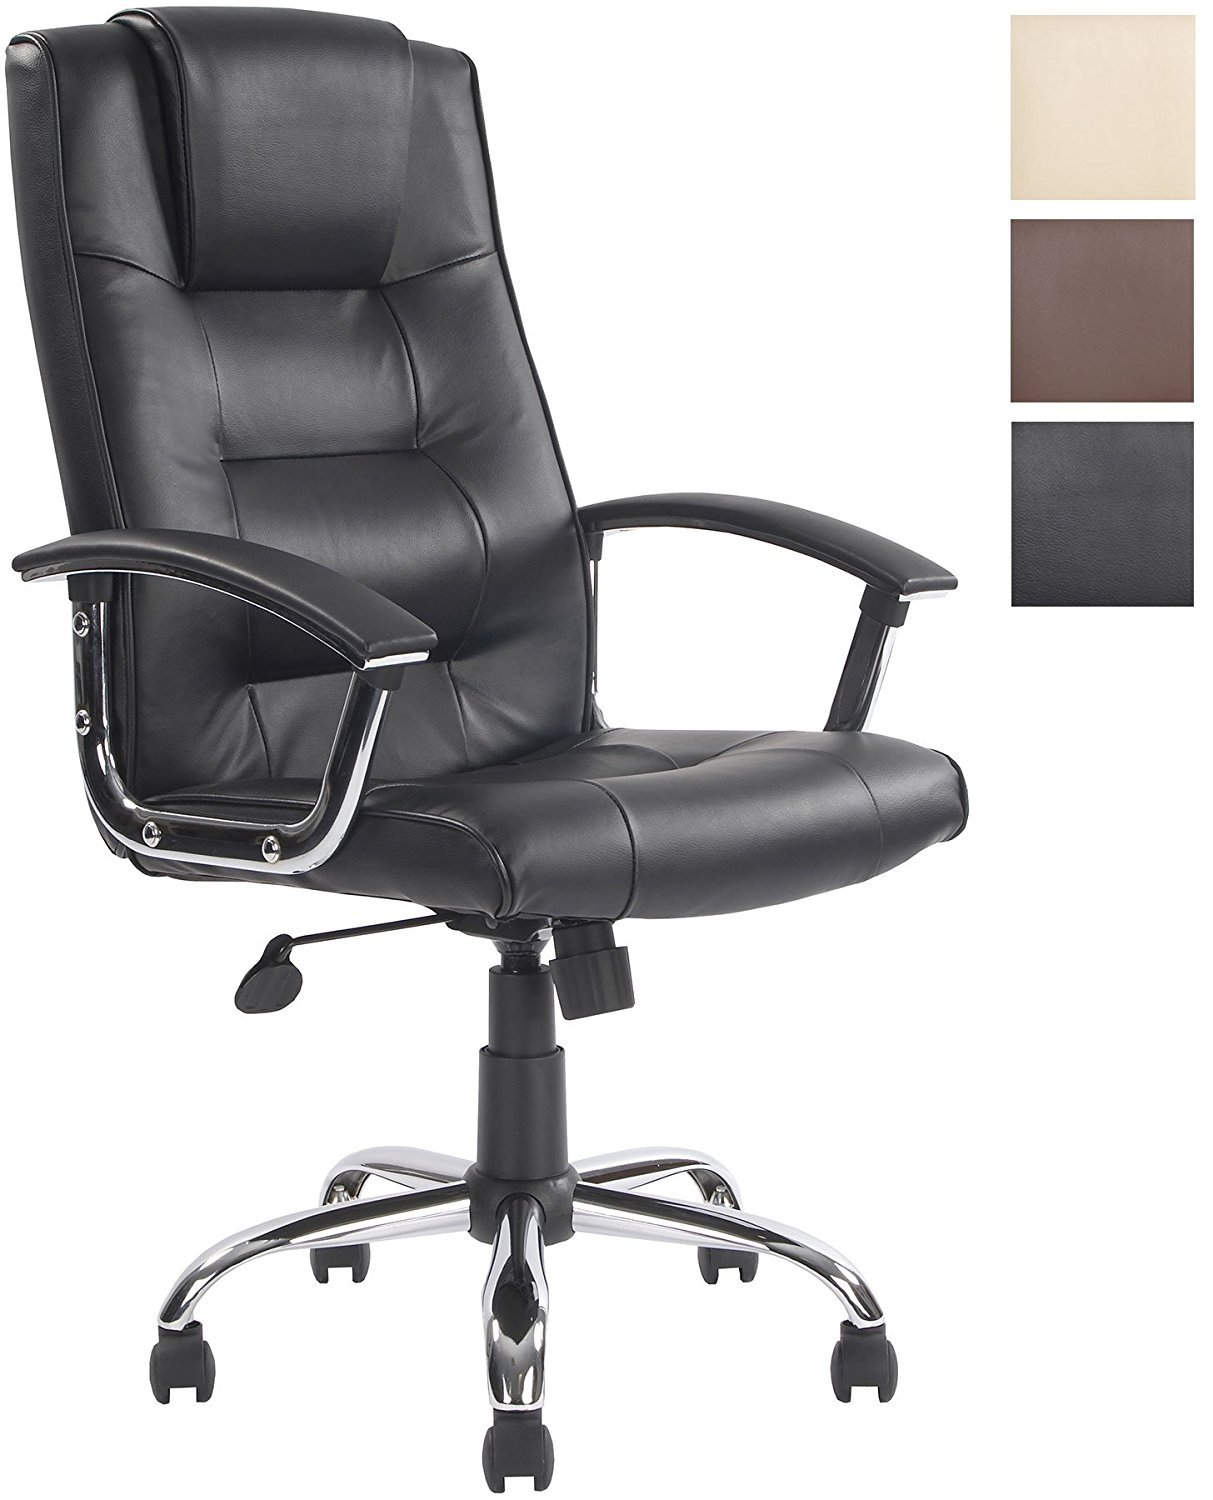 office furniture online loughborough leather faced manager chair